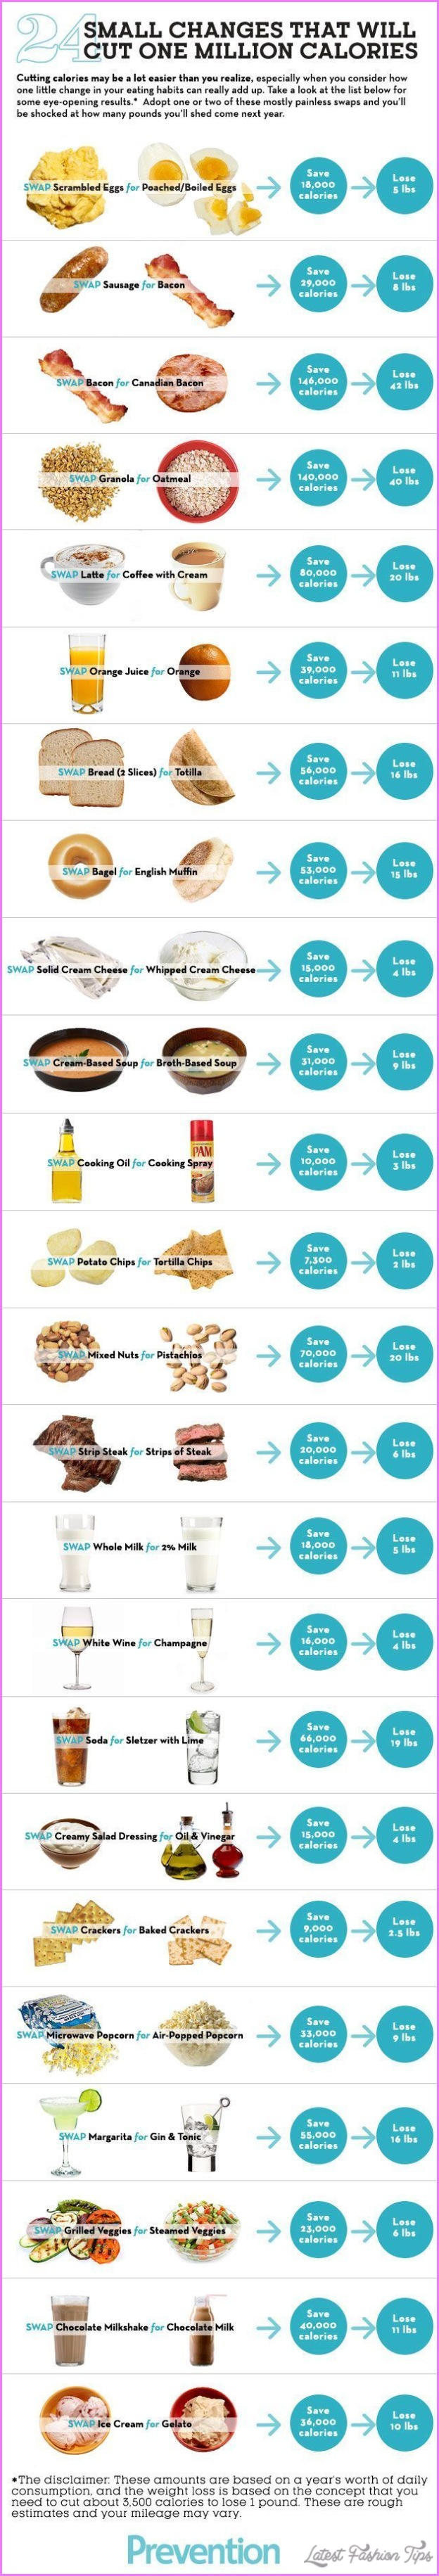 DO LIPIDS REALLY ADD ON THE CALORIES AND WEIGHT?_1.jpg